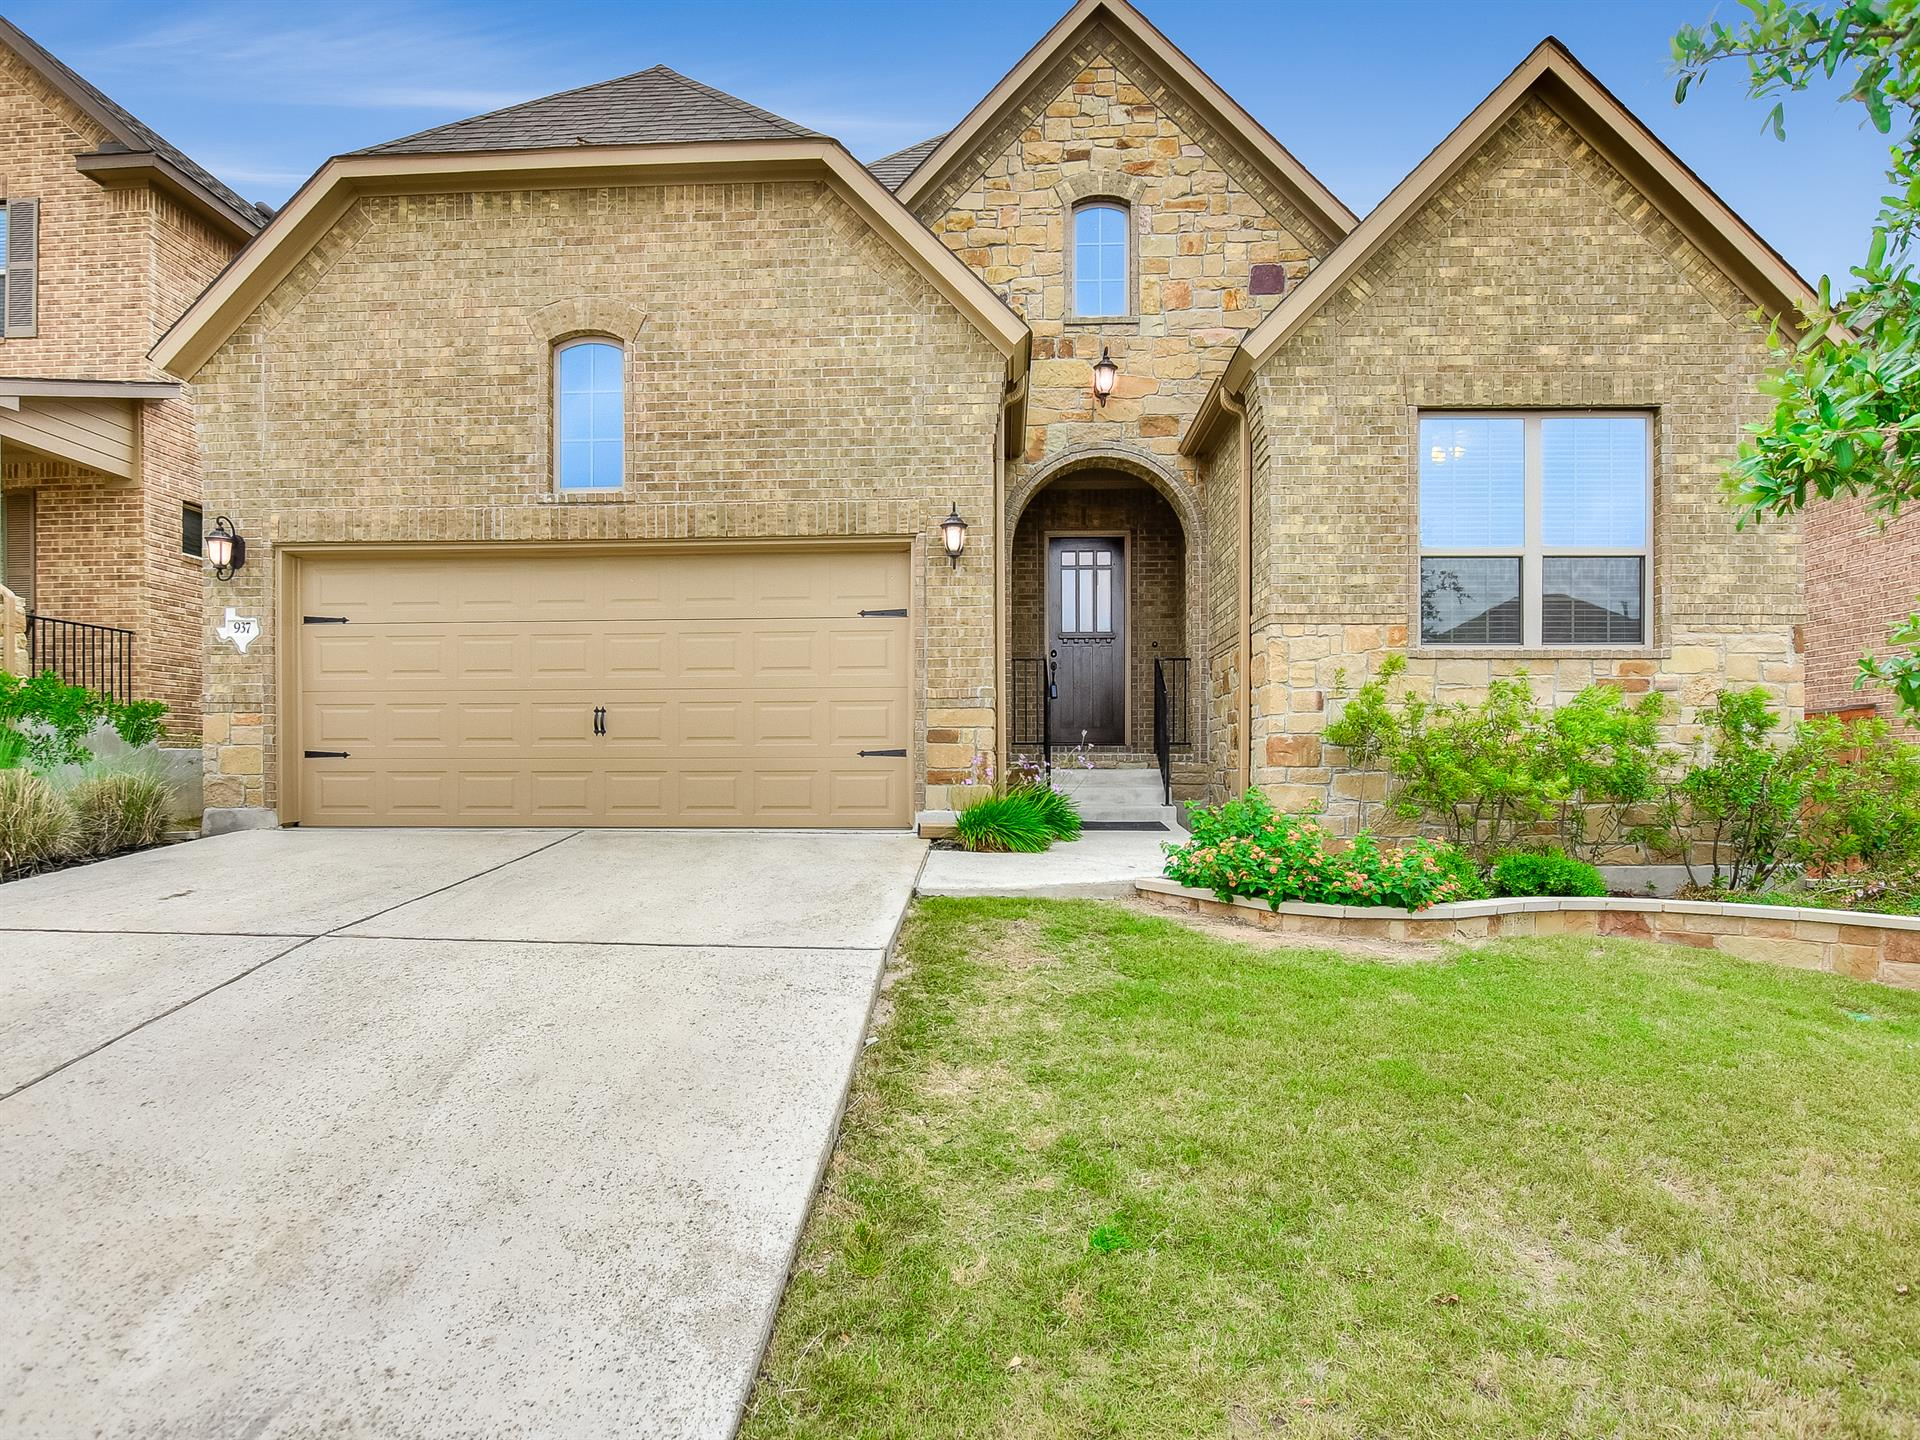 Additional photo for property listing at 937 Purple Moor Pass 937 Purple Moor Pass Leander, Texas 78641 Estados Unidos